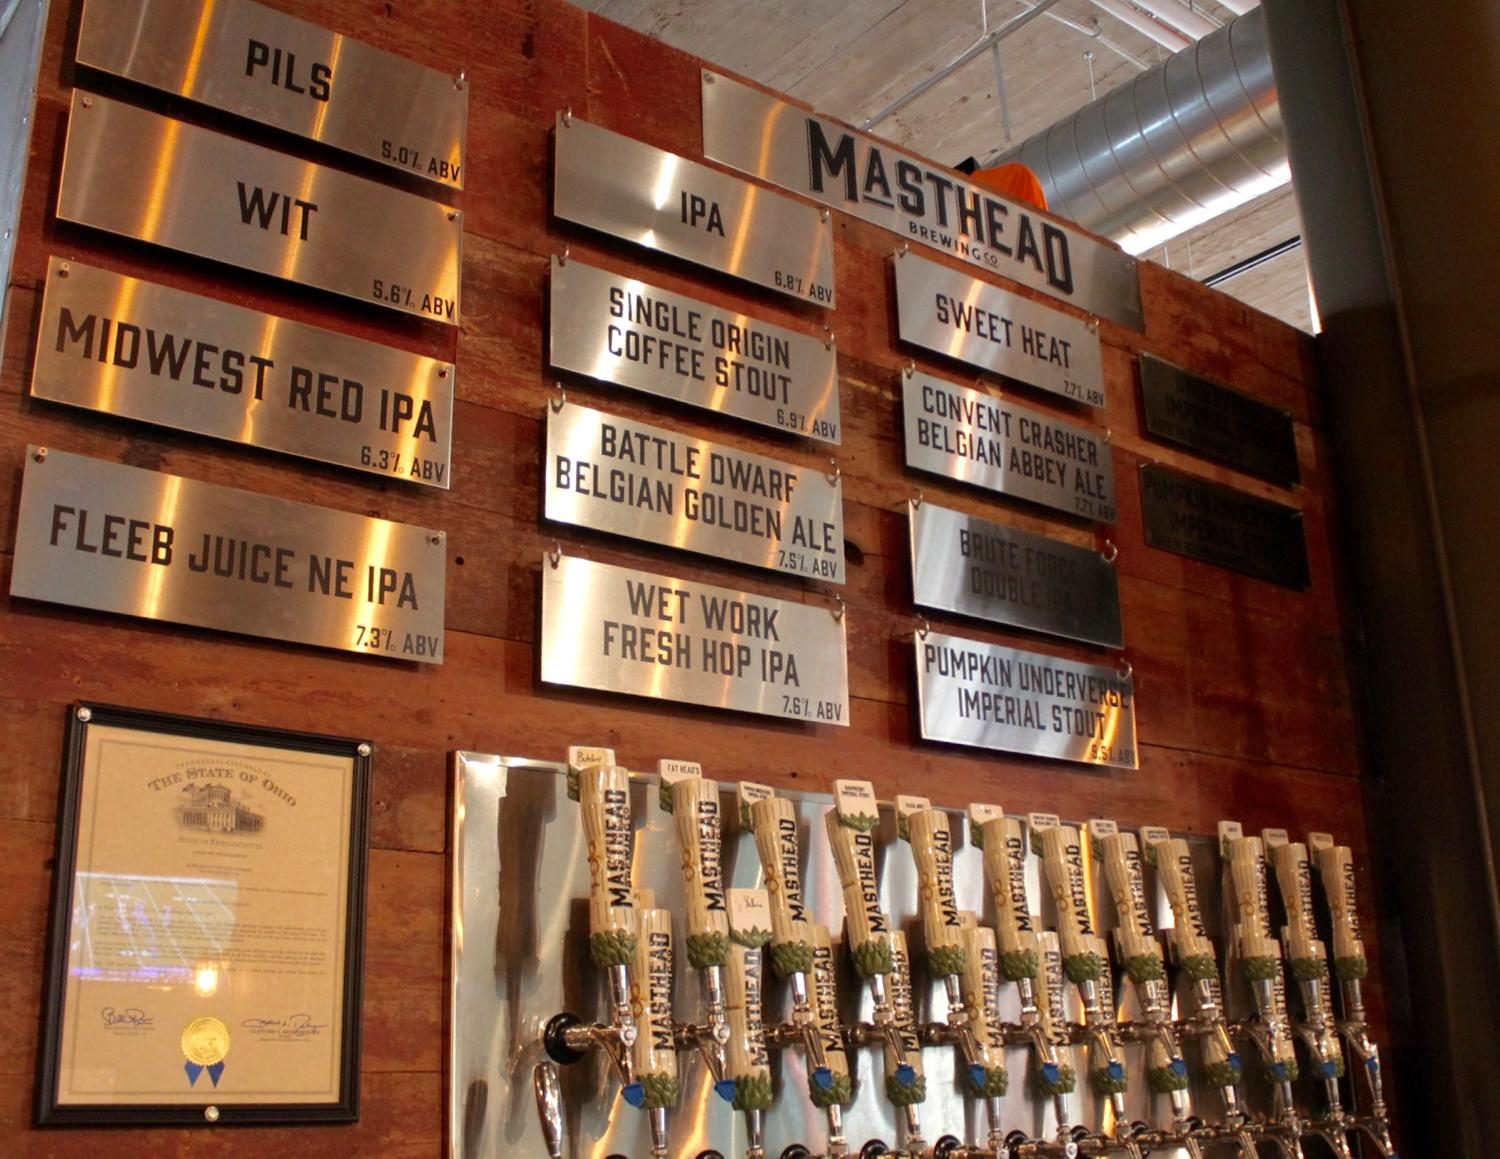 <p>Originally built in 1921 as an automotive dealership in Downtown Cleveland, the building that is now home to Masthead Brewery is actually listed on the National Register of Historic Places. Featured is a full bar and kitchen, which includes their specialty: a 12-inch Neapolitan-style pizza baked in a Marra Forni oven. They focus on brewing American and Belgian Style Beers and also have a barrel-aged beer program, utilizing whiskey barrels from top-rated distilleries. ADDRESS: 1261 Superior Ave., Cleveland, OH 44114 / Image: Rose Brewington // Published: 11.22.17</p>